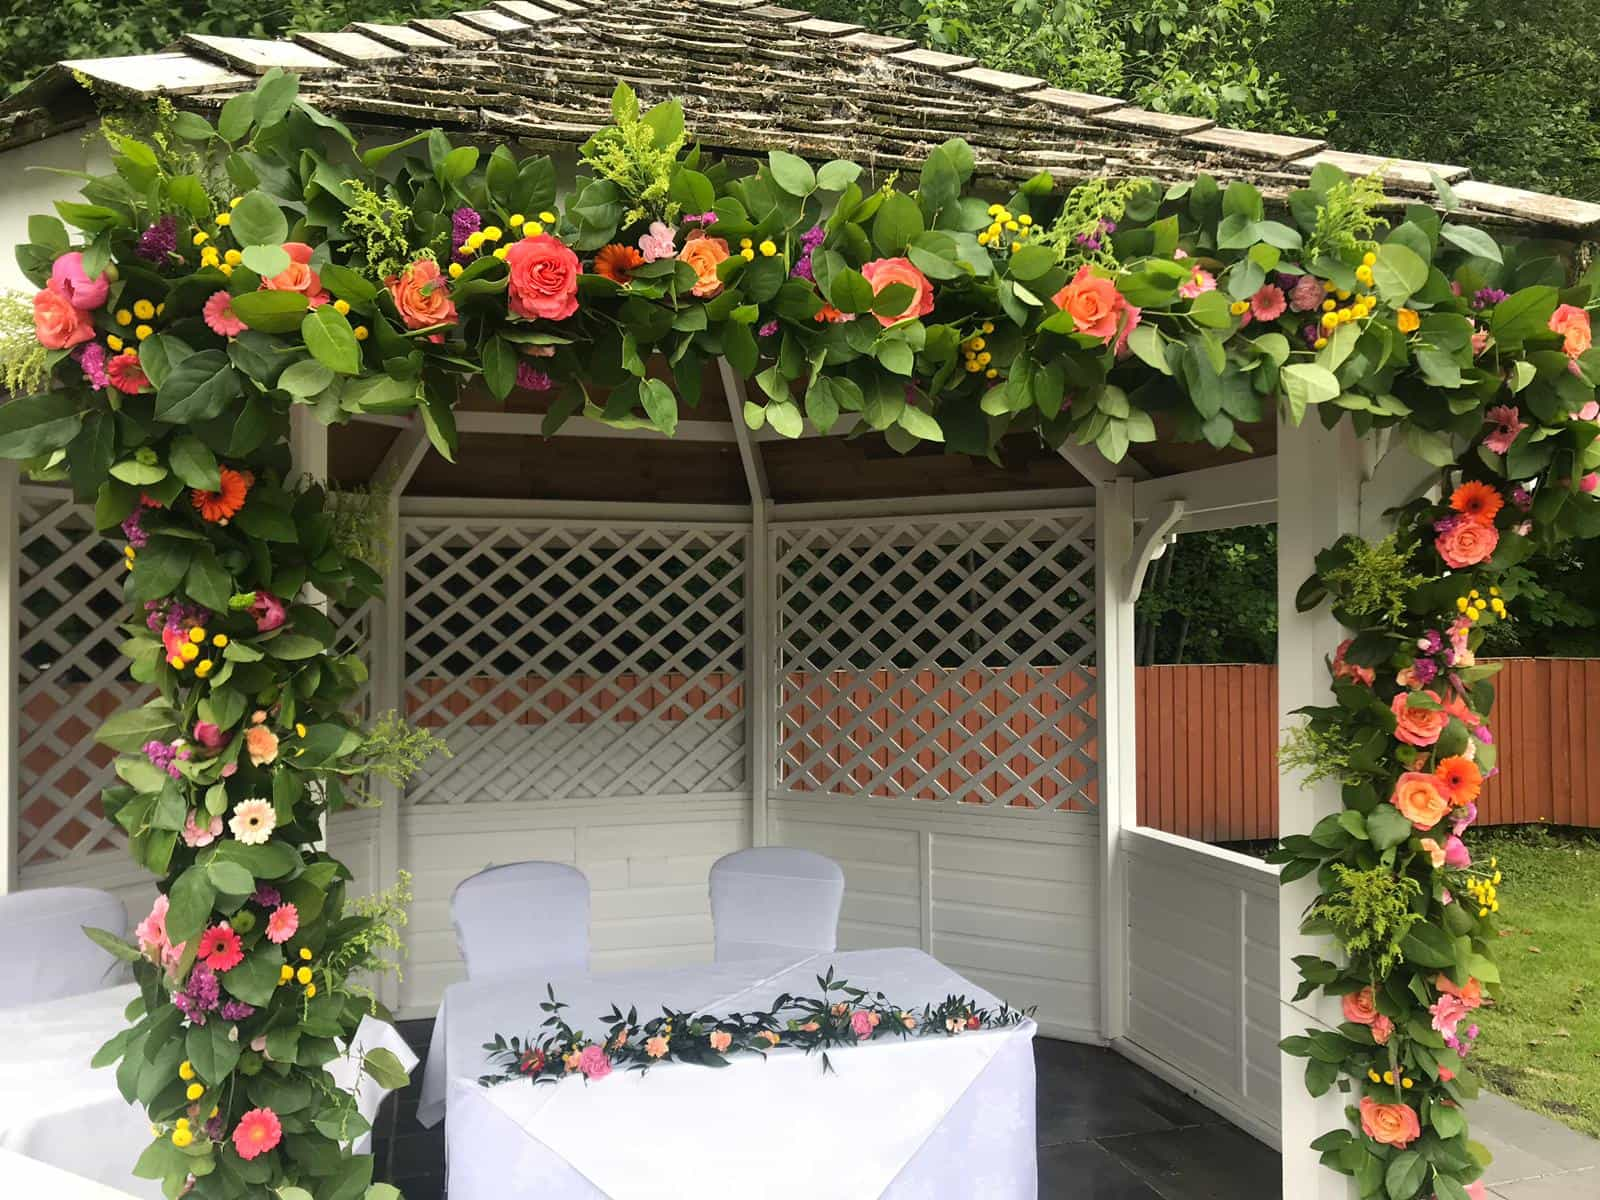 Wedding ceremony outdoor with beautiful floral arch and white seating for bride and groom